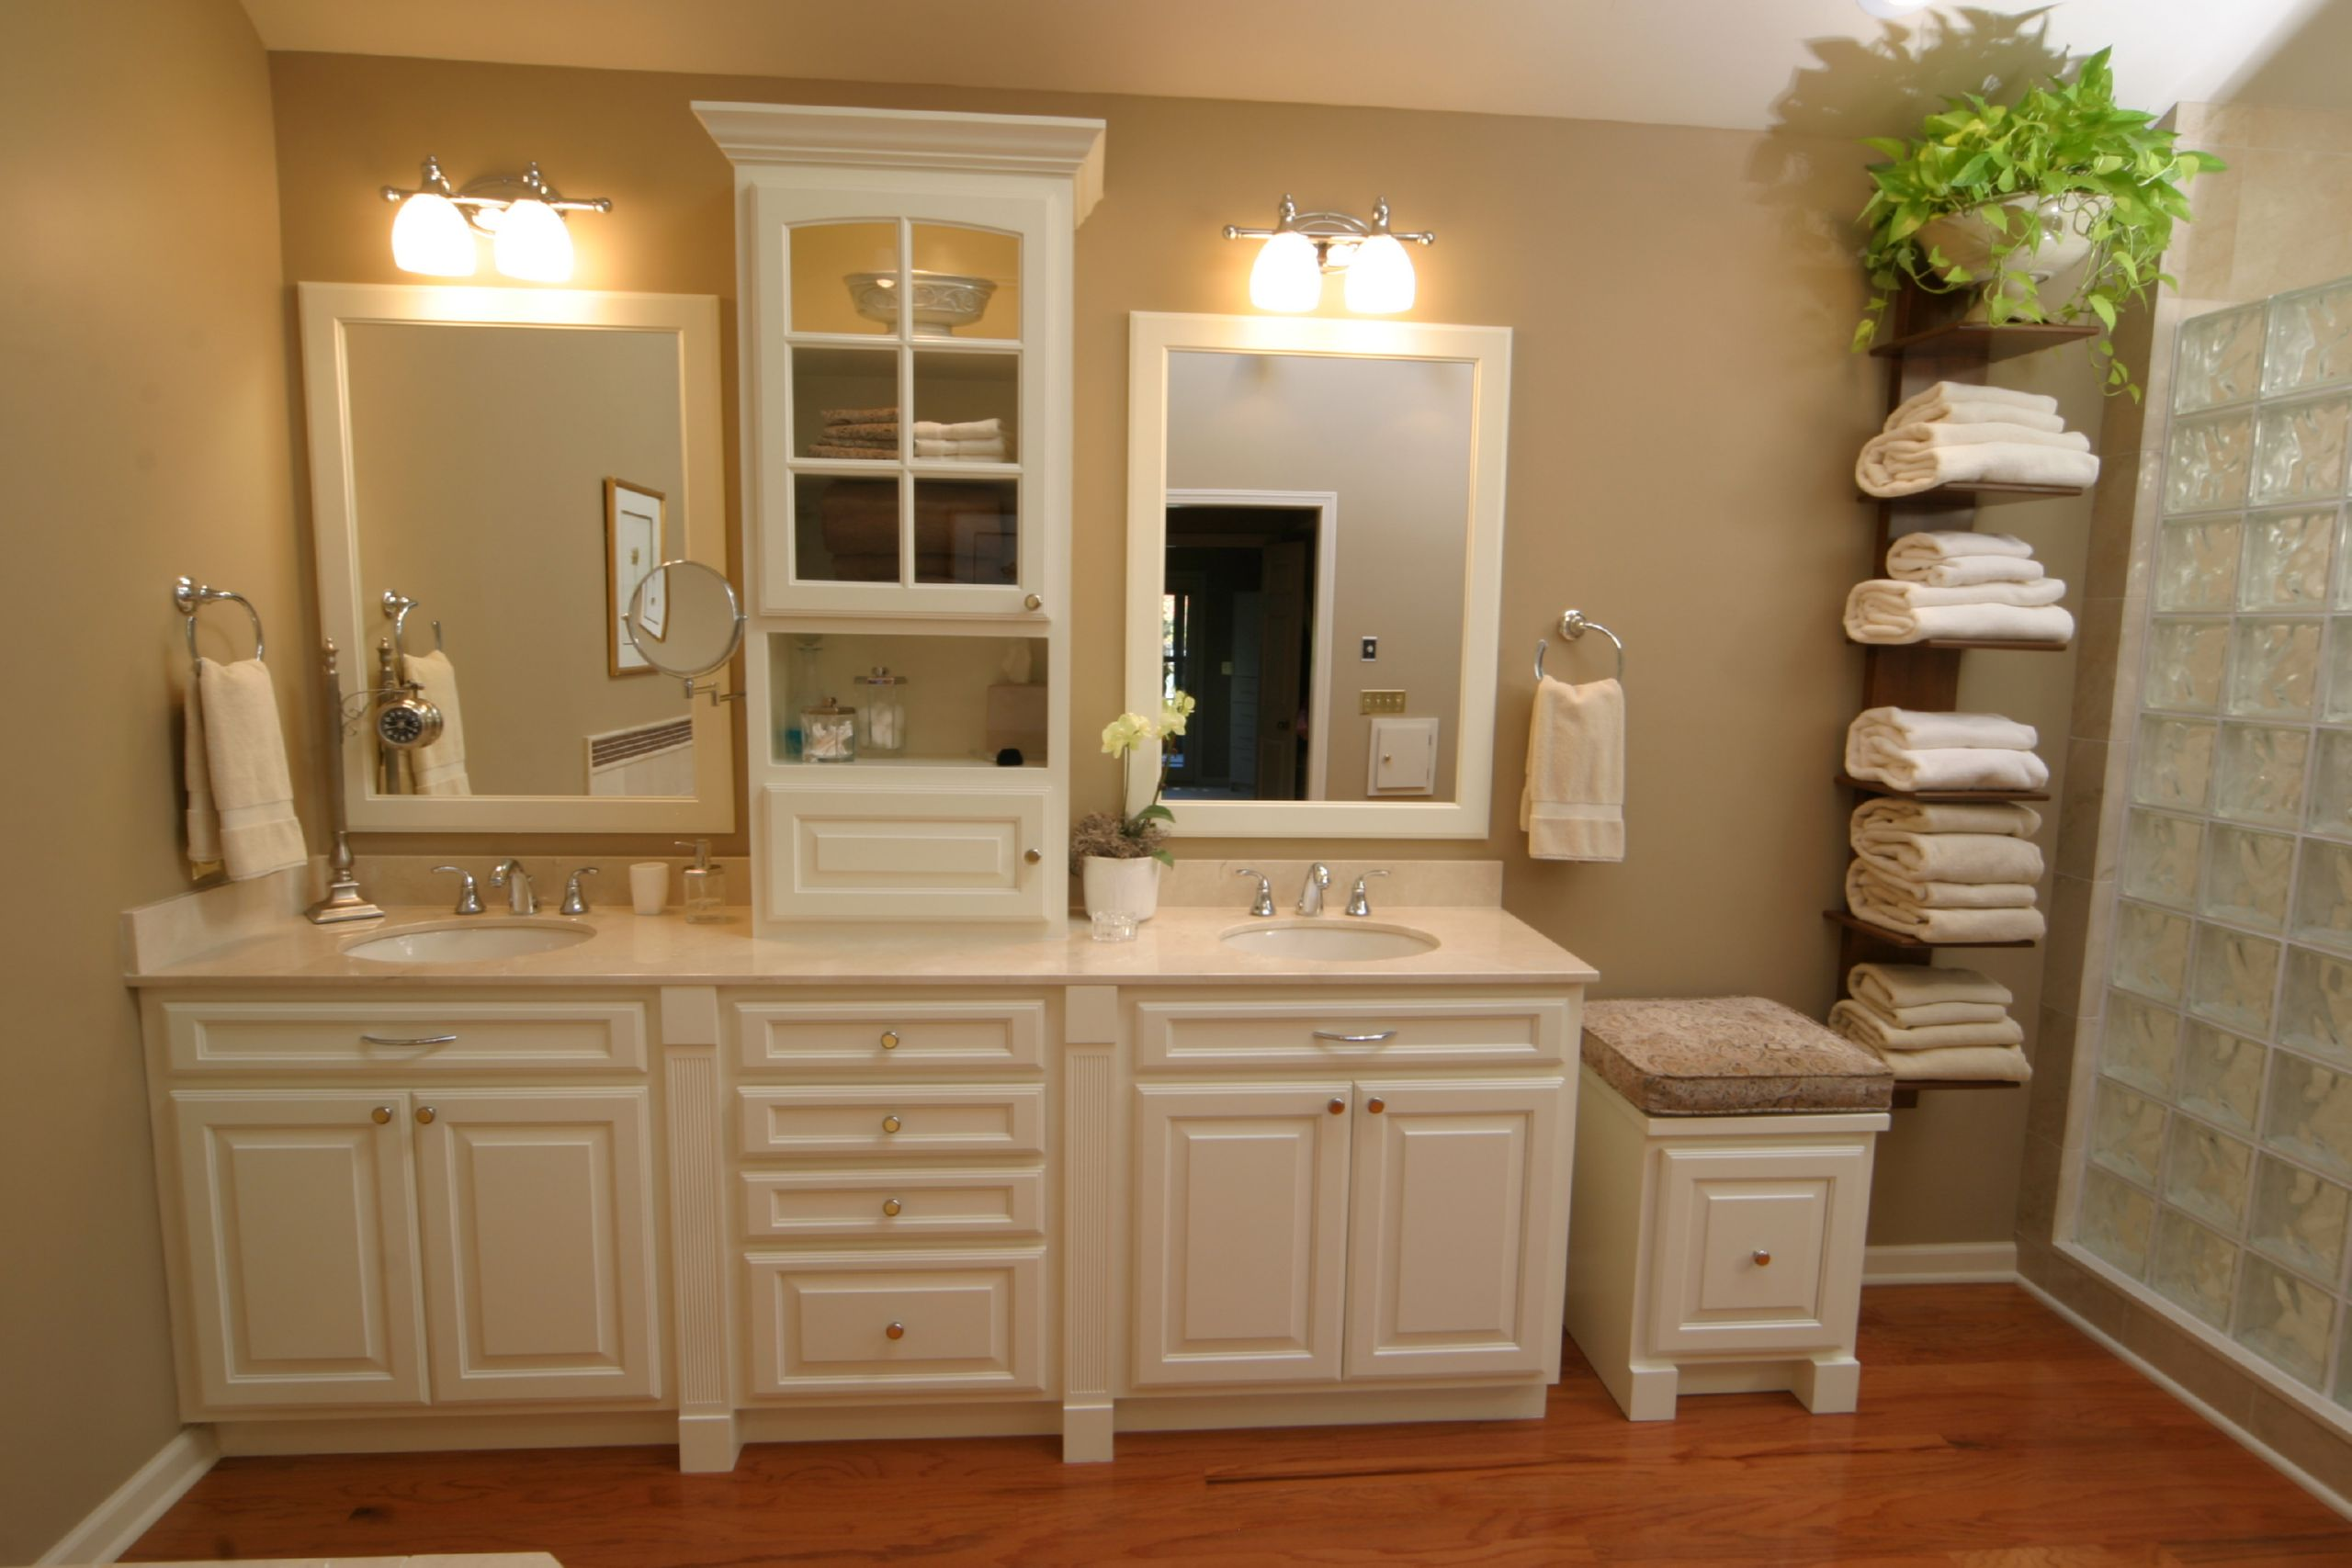 Bathroom remodeling tips njw construction How to remodel a bathroom